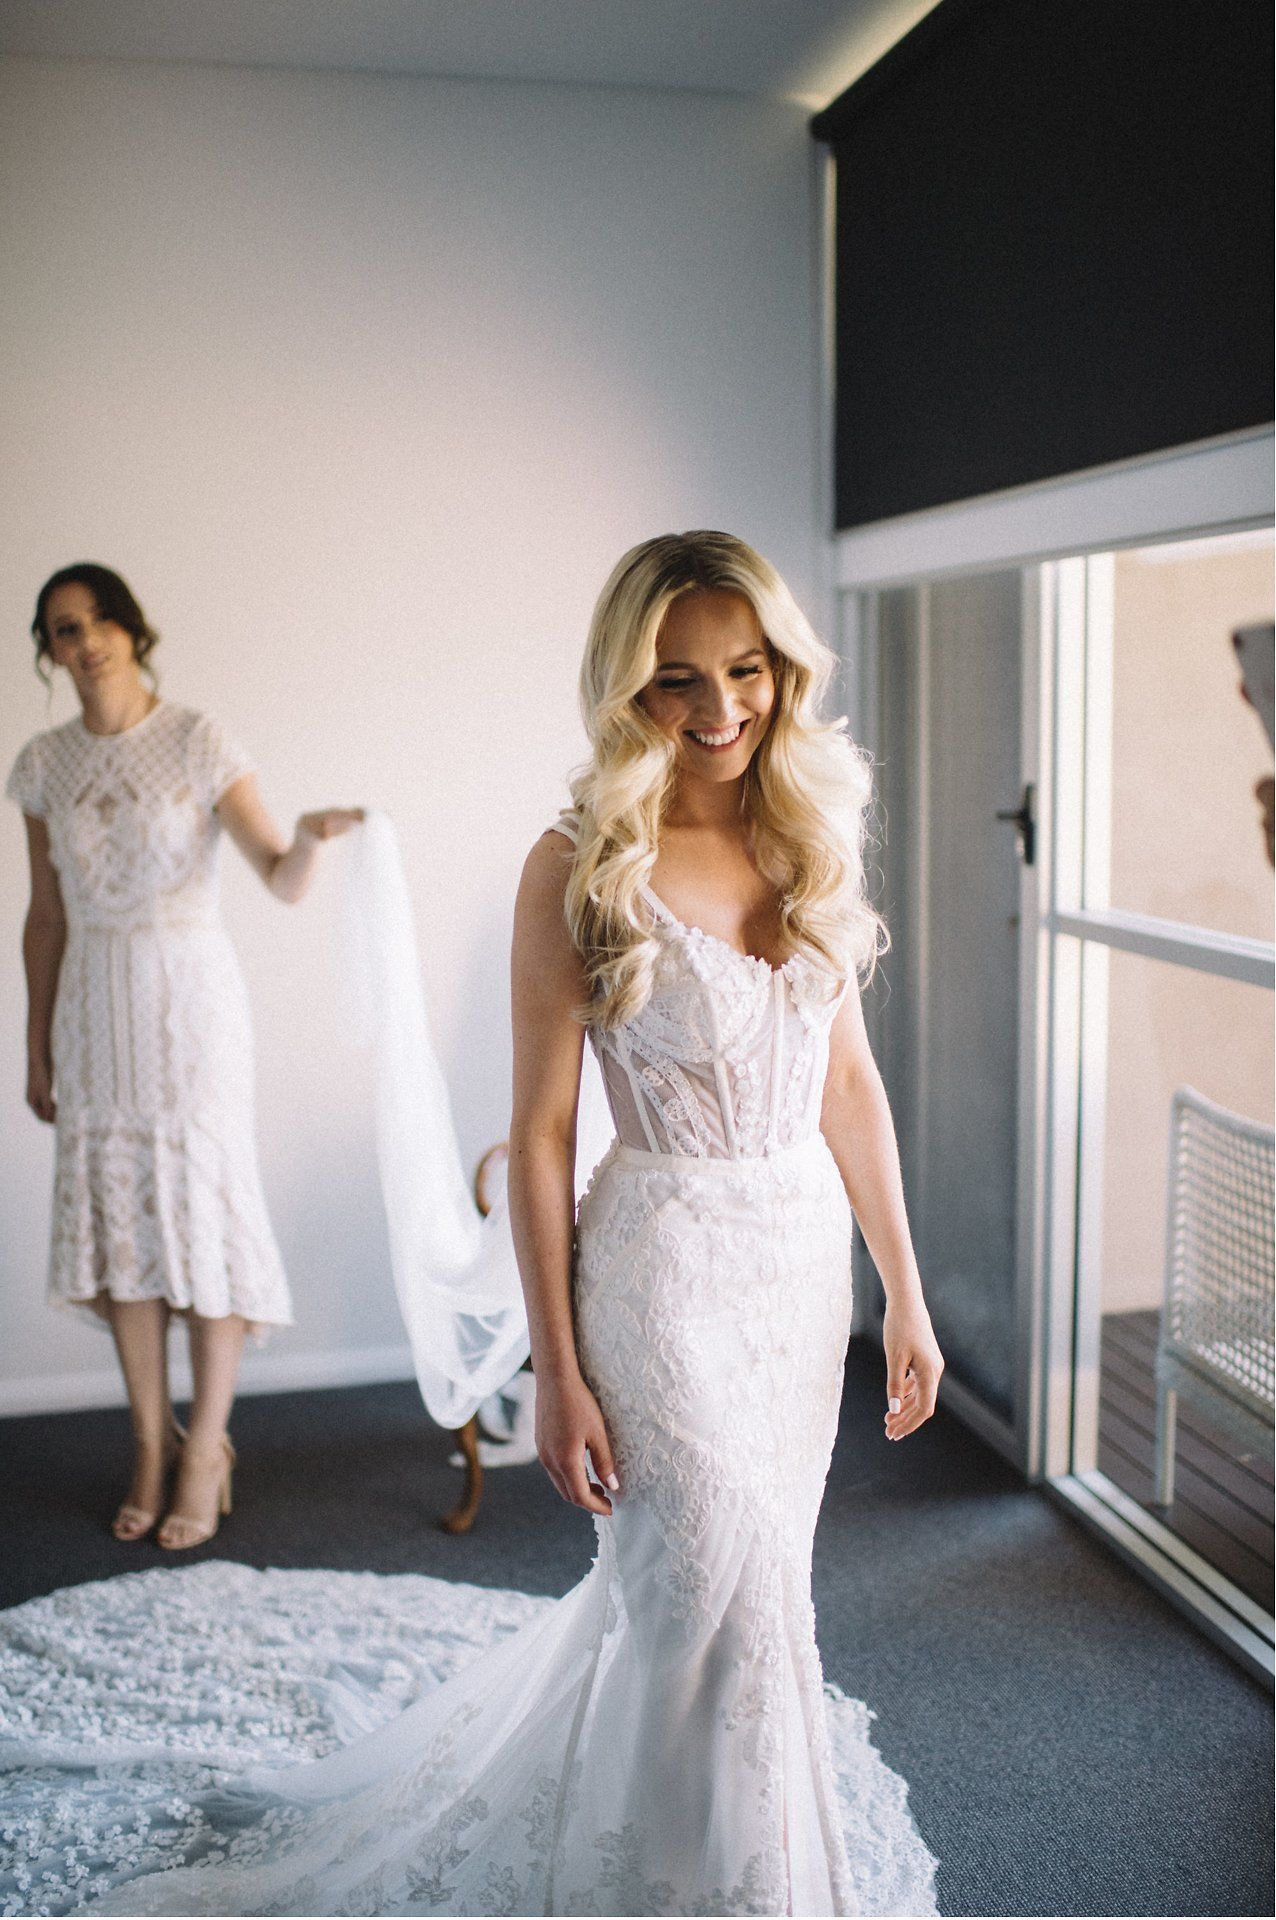 70019448db40 Image 13 - This Wedding Dress will have you speechless. in Real Weddings.